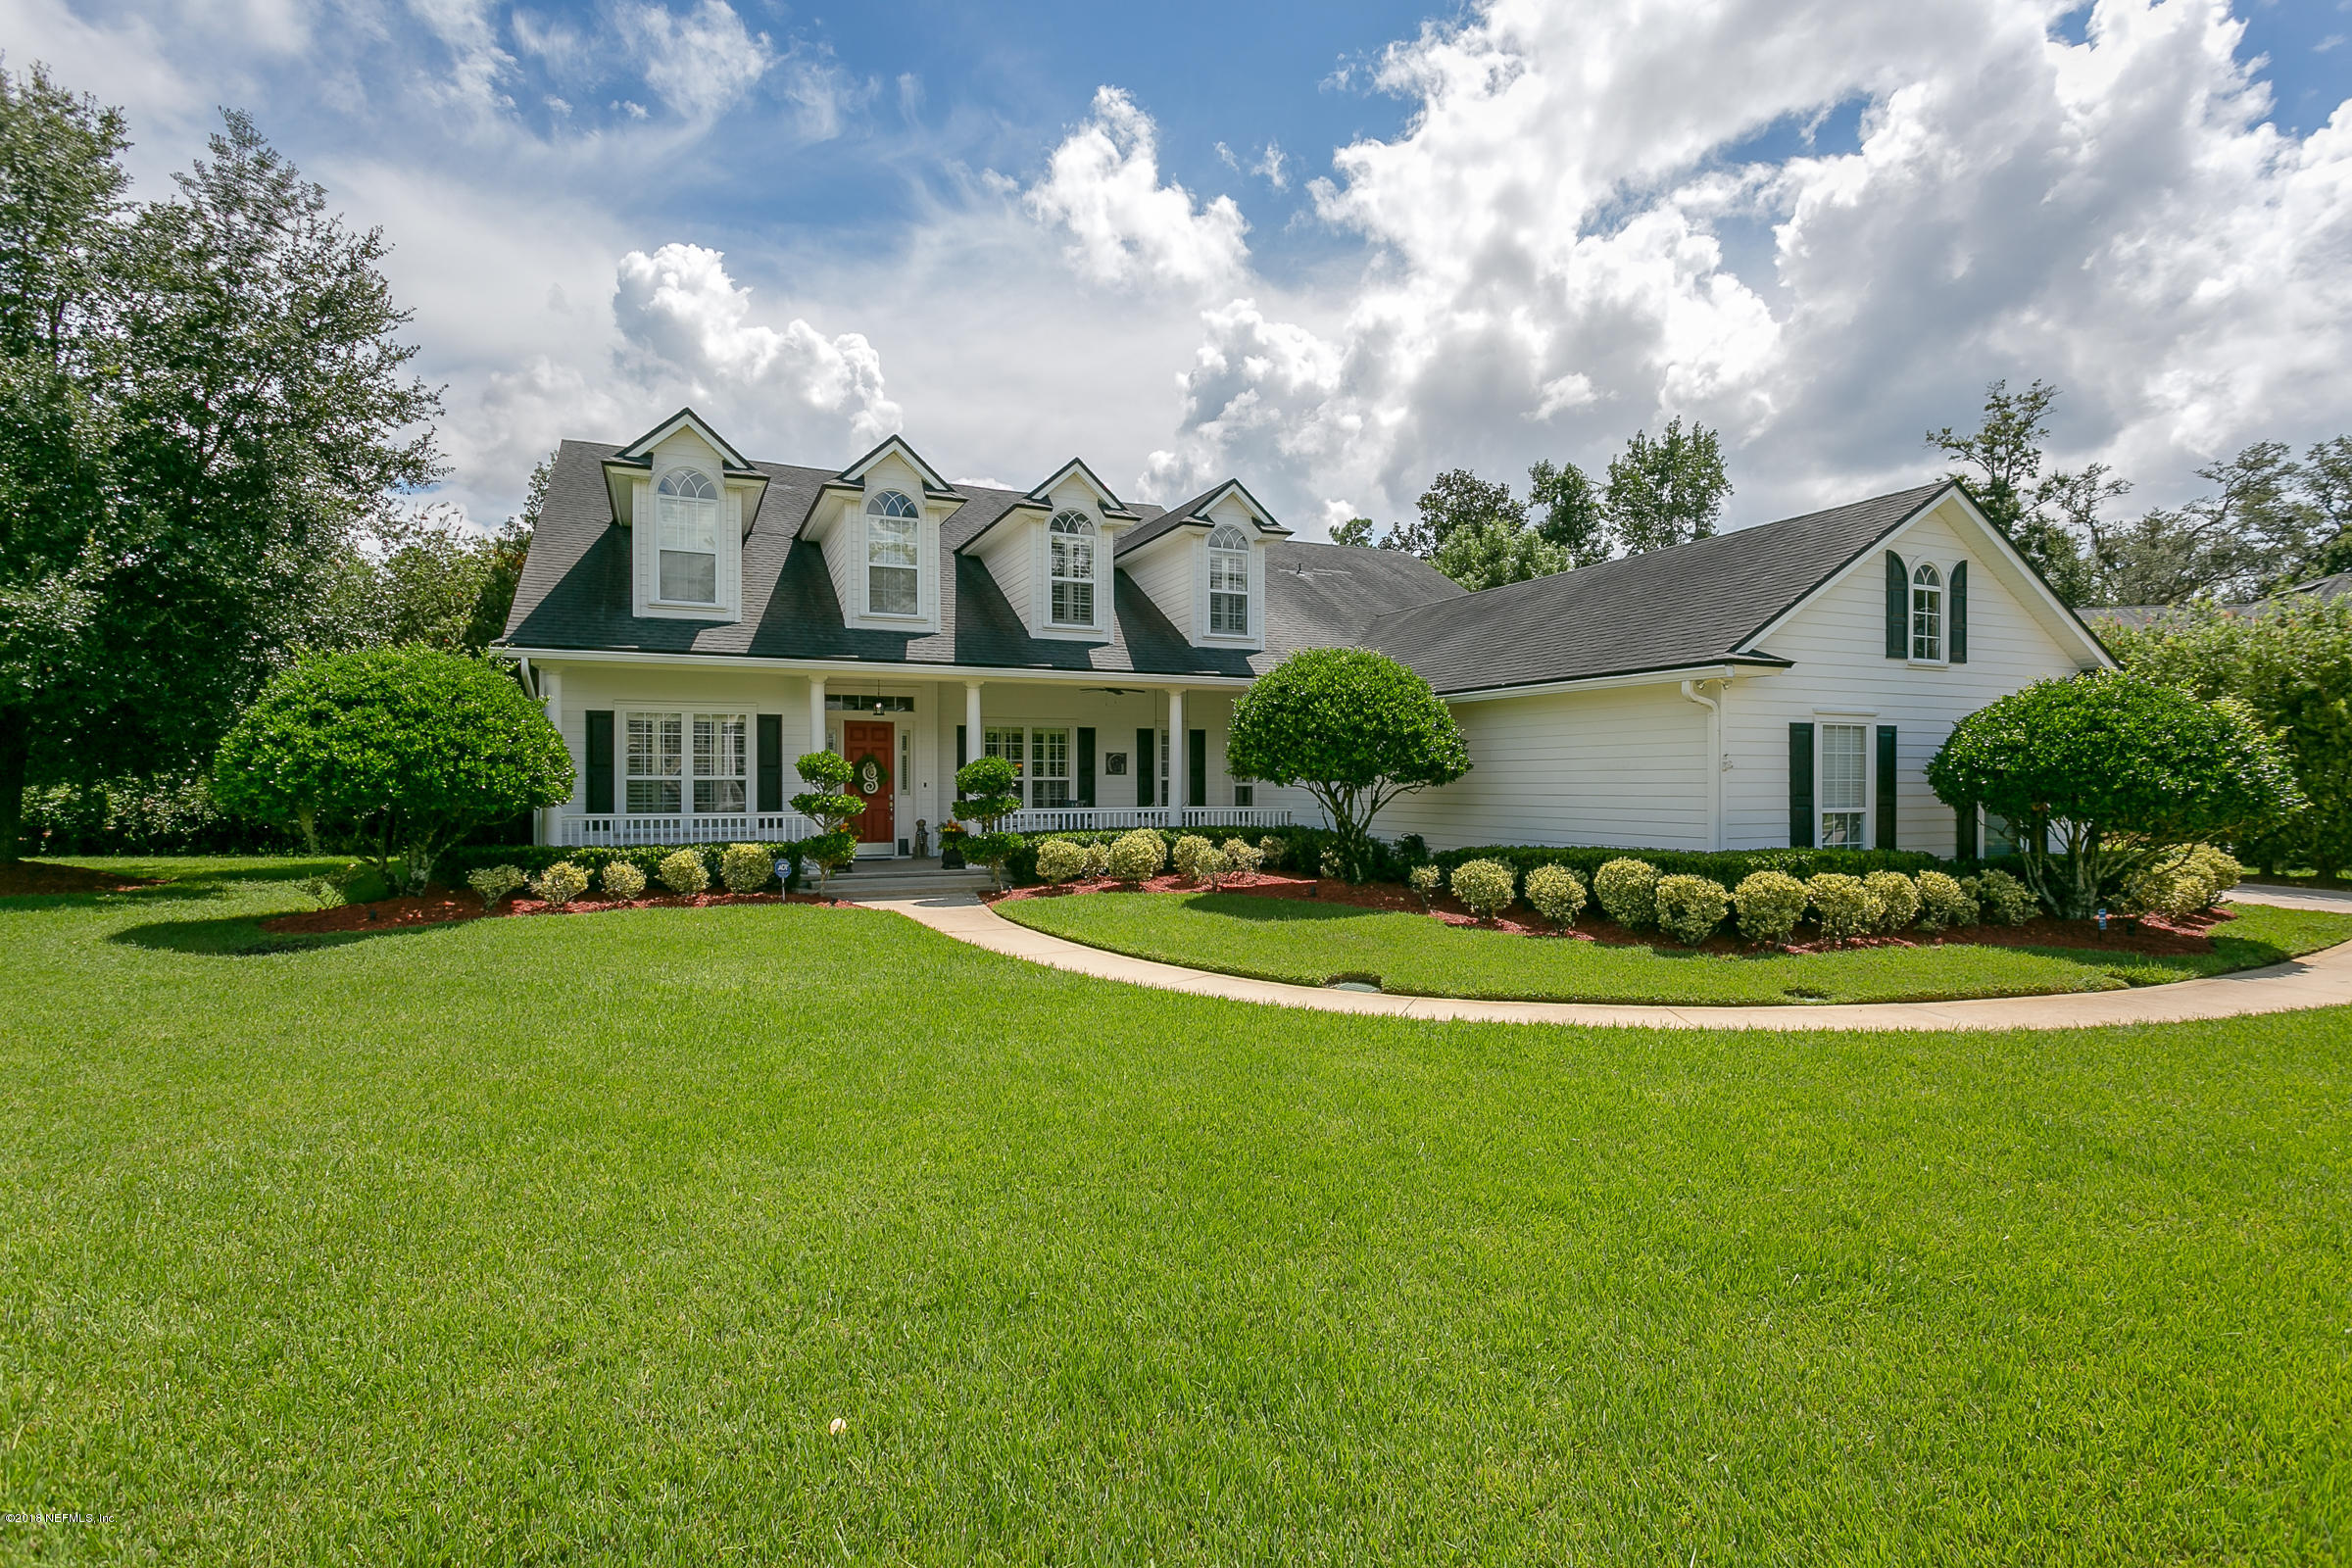 2667 COUNTRY SIDE, FLEMING ISLAND, FLORIDA 32003, 5 Bedrooms Bedrooms, ,4 BathroomsBathrooms,Residential - single family,For sale,COUNTRY SIDE,955639